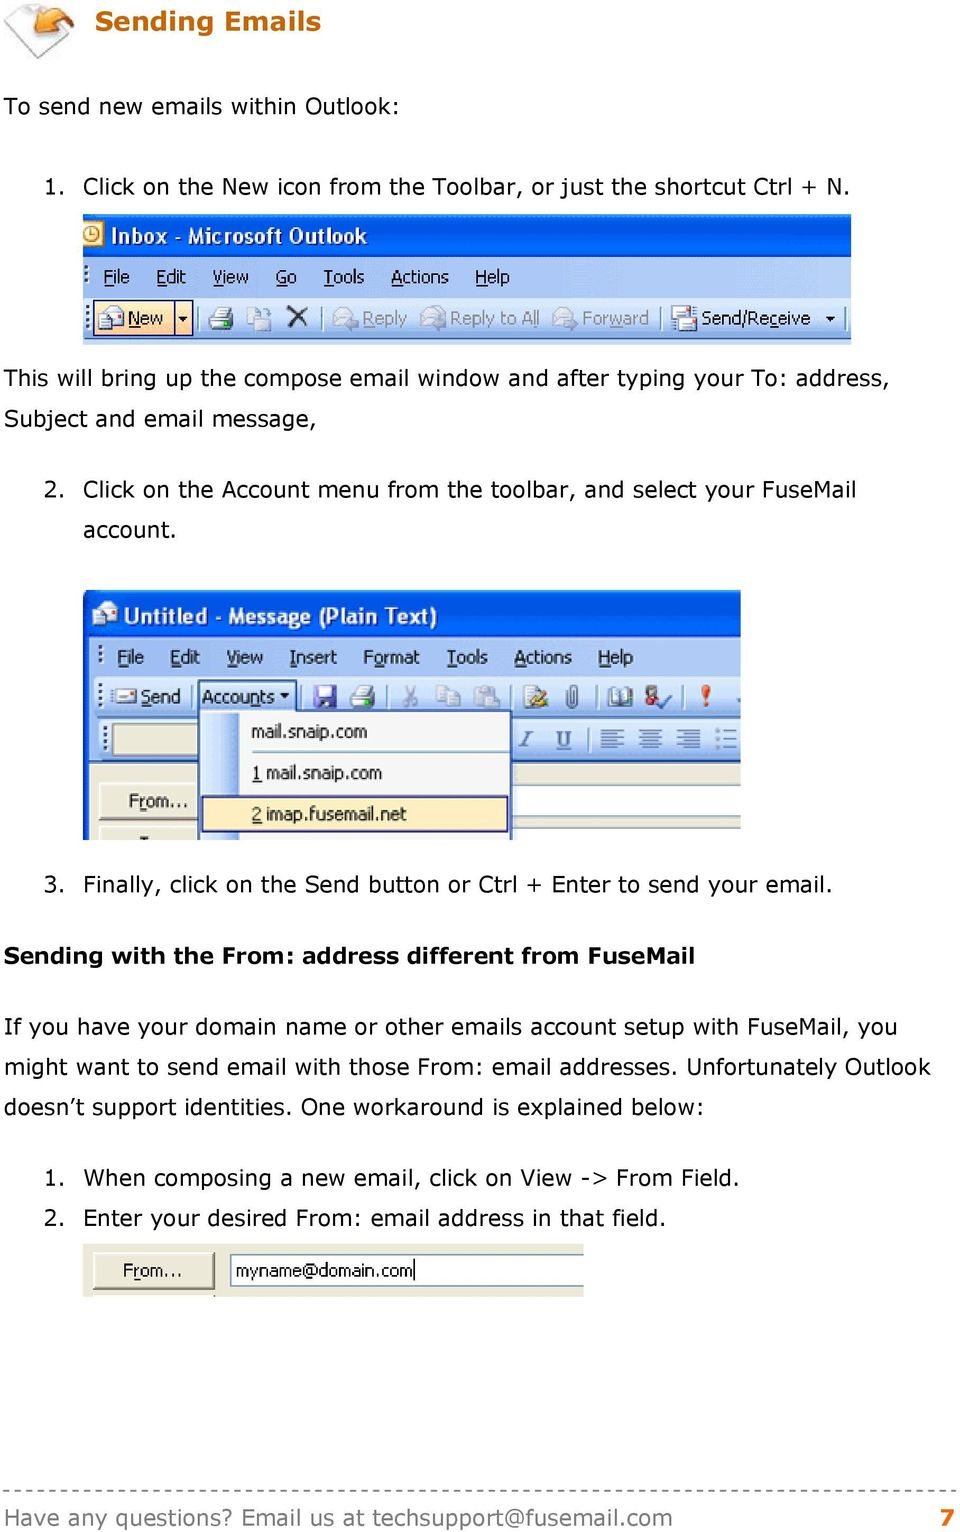 Finally, click on the Send button or Ctrl + Enter to send your email.